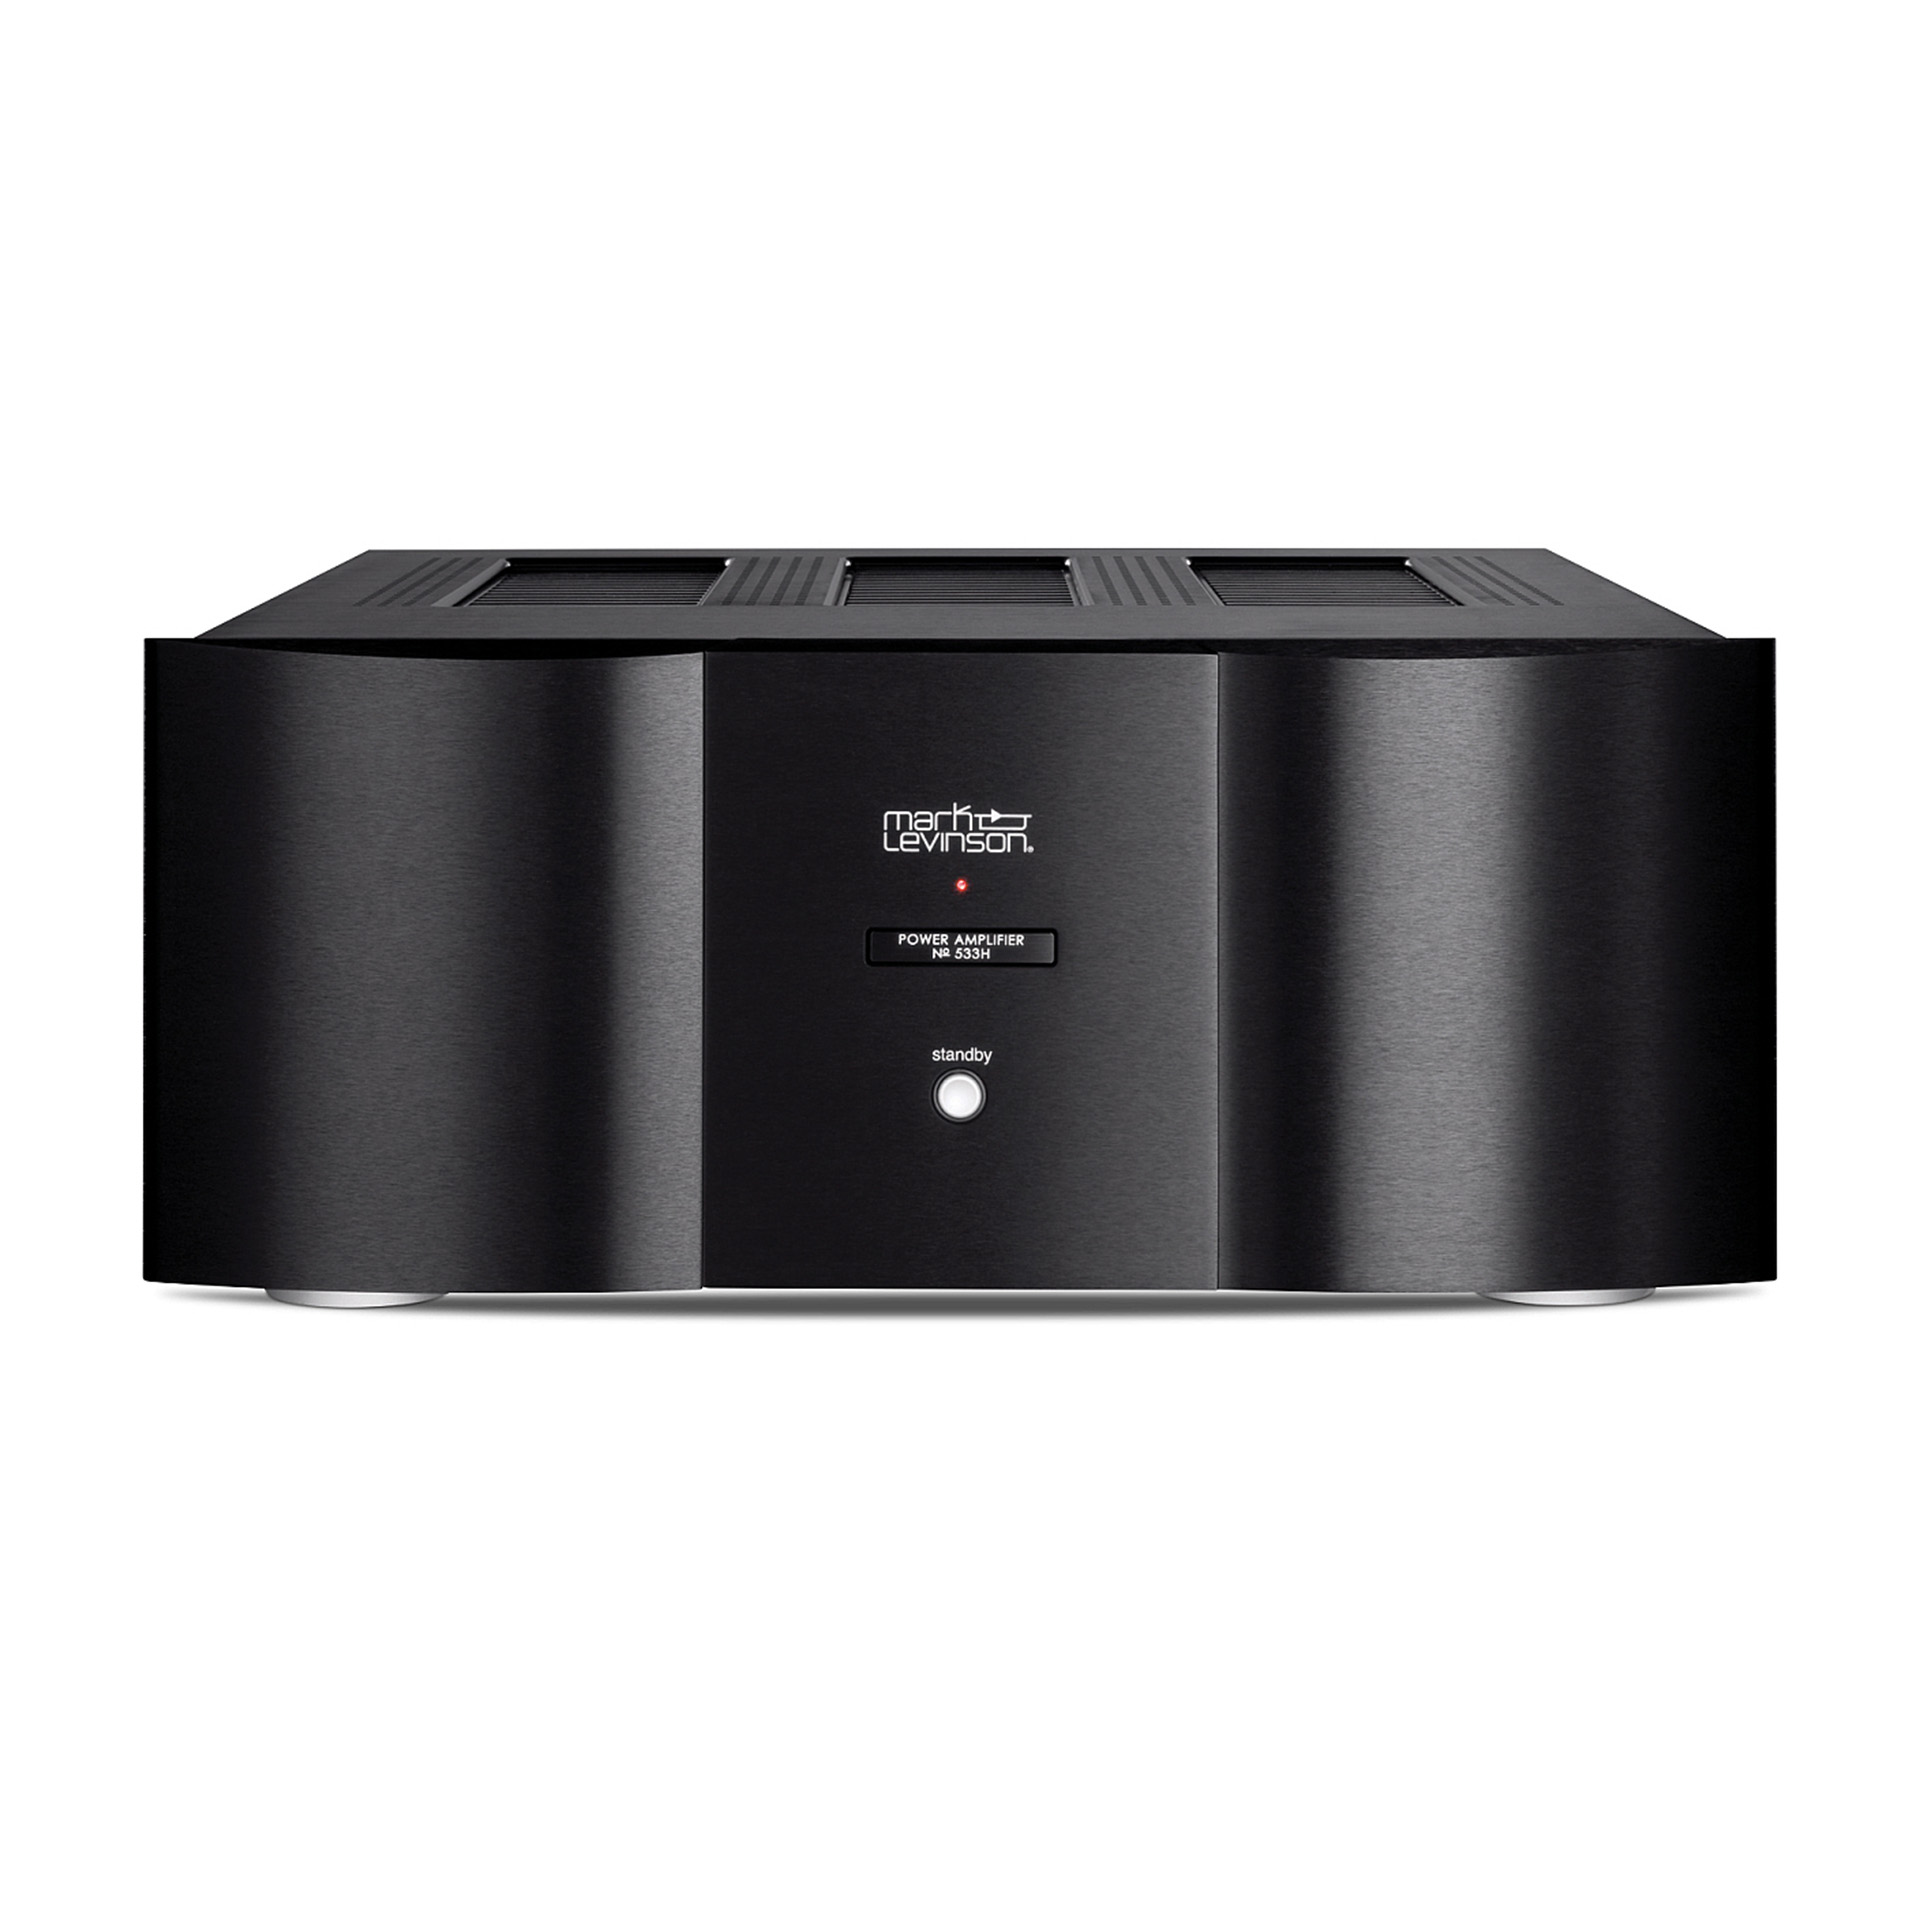 Mark Levinson No 533H - Chattelin Audio System